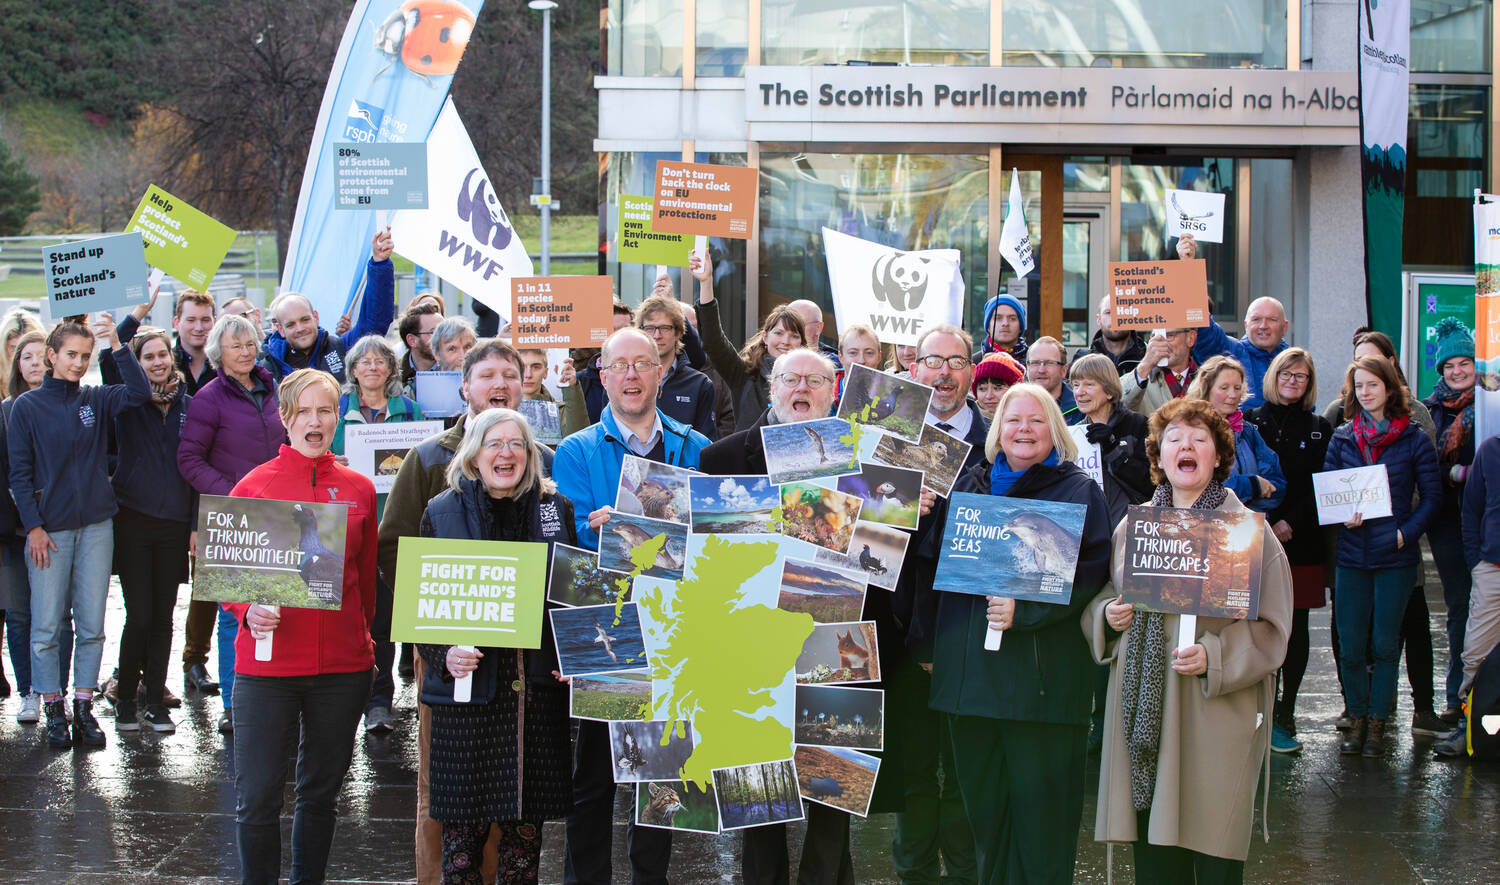 The Trust took part in the launch of the #FightforScotlandsNature at the Scottish Parliament